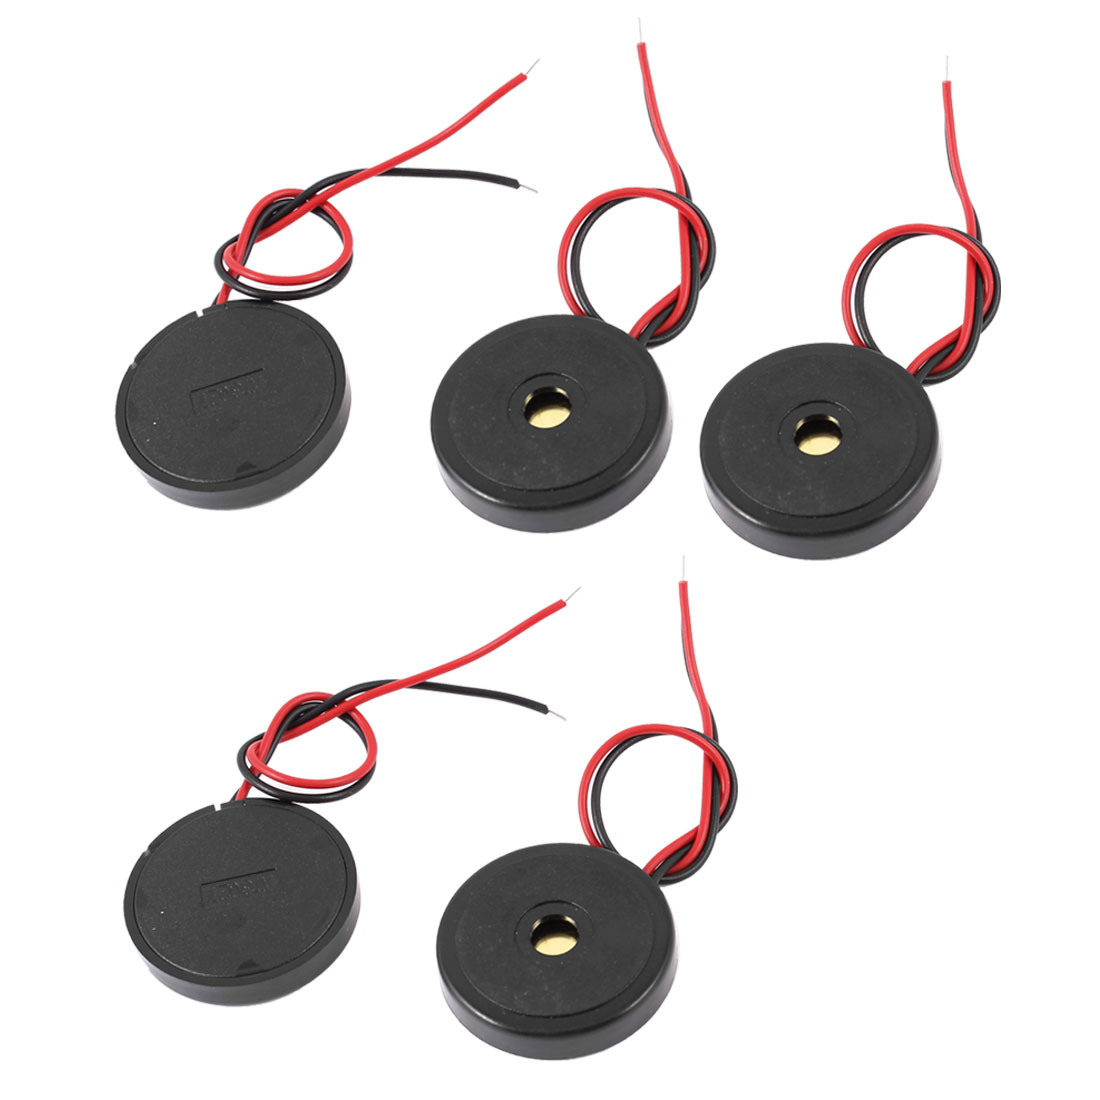 5 Pcs DC 1-30V 90dB Sound Passive Electronic Buzzer Alarm Black 30 x 6mm